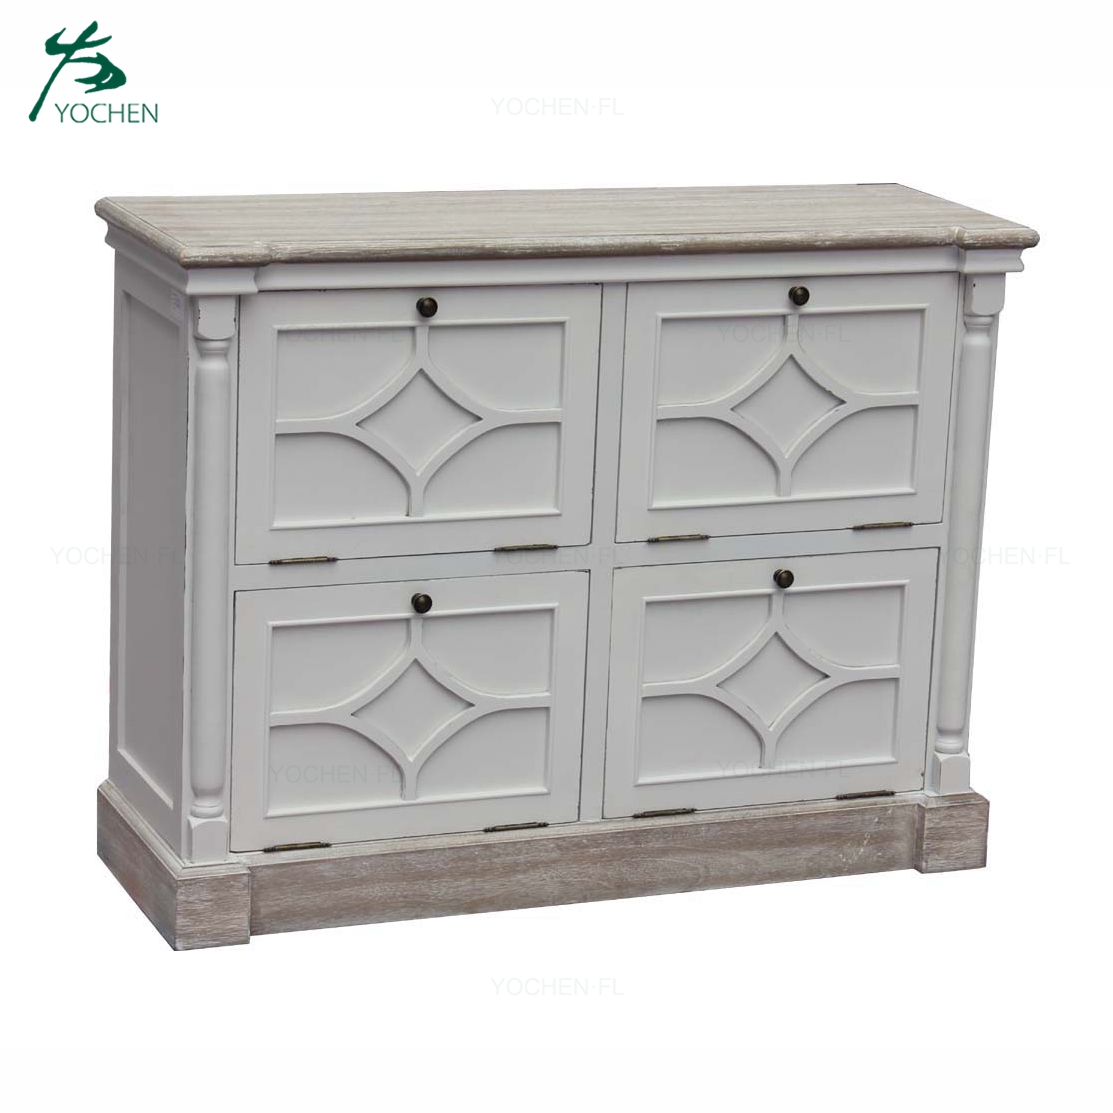 Industrial Style Wooden Living Room Furniture Wooden Cabinet